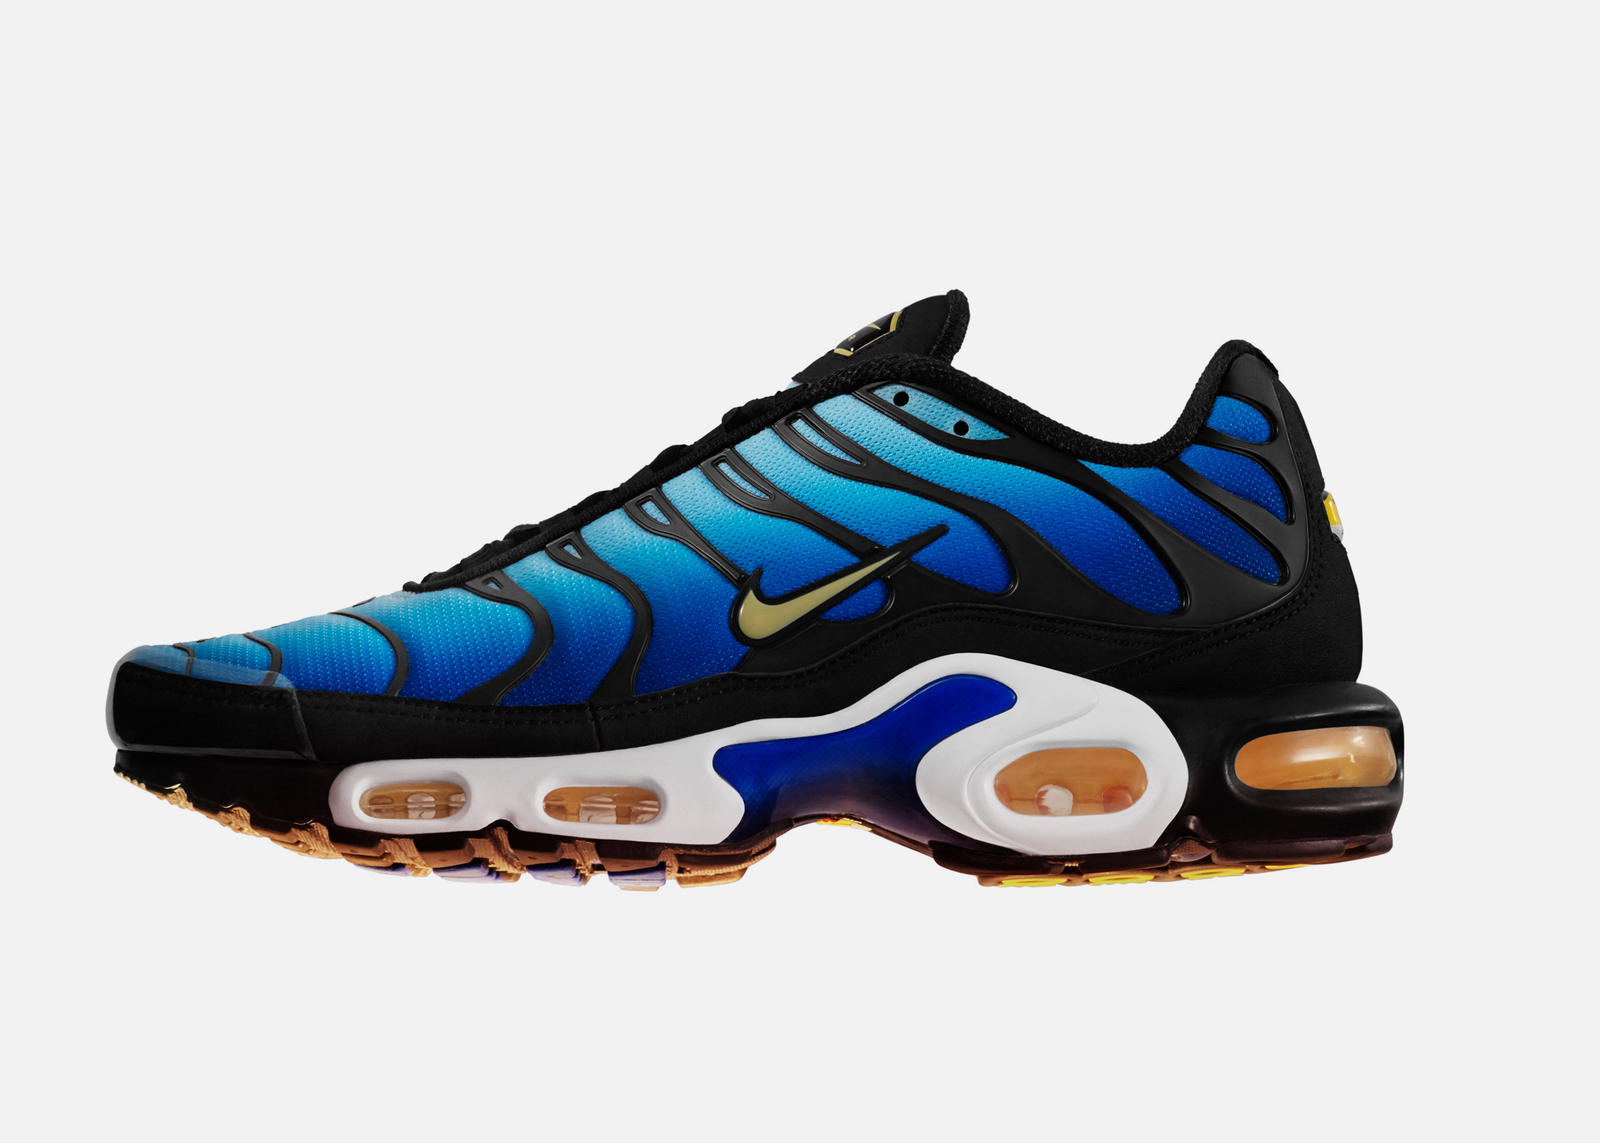 online retailer d3583 99948 The Untold Story of the Nike Air Max Plus 20